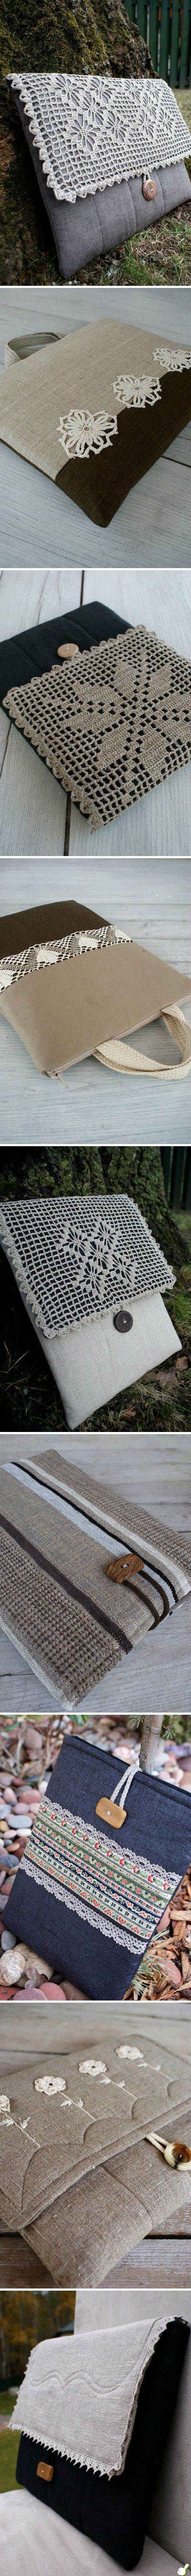 Cool idea for combining crochet with fabric for purses.  No patterns but these are just beautiful.